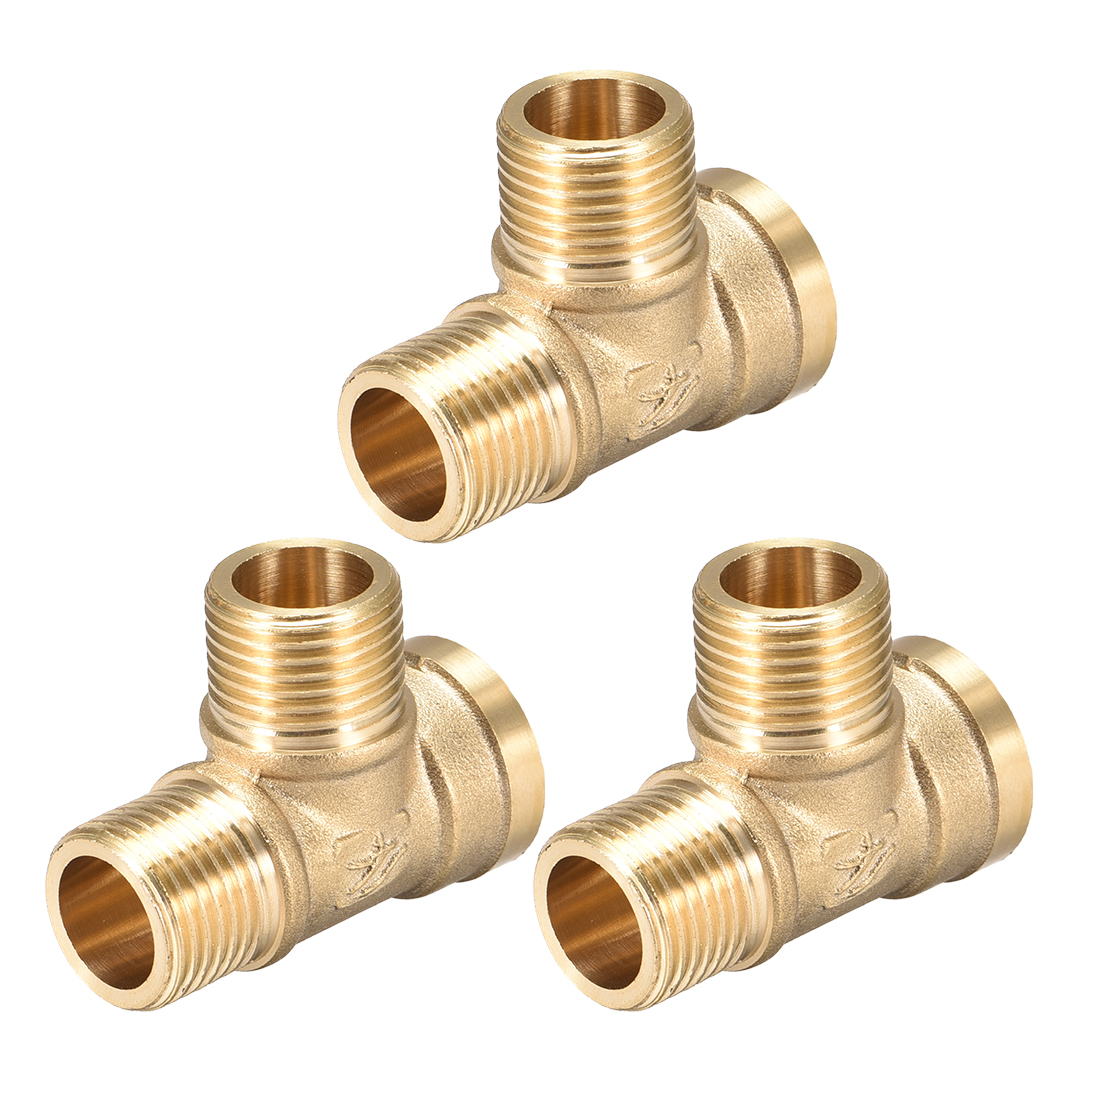 Brass Tee Pipe Fitting G1/2 MalexG1/2 Male xG1/2 Female T Shaped Connector 3pcs